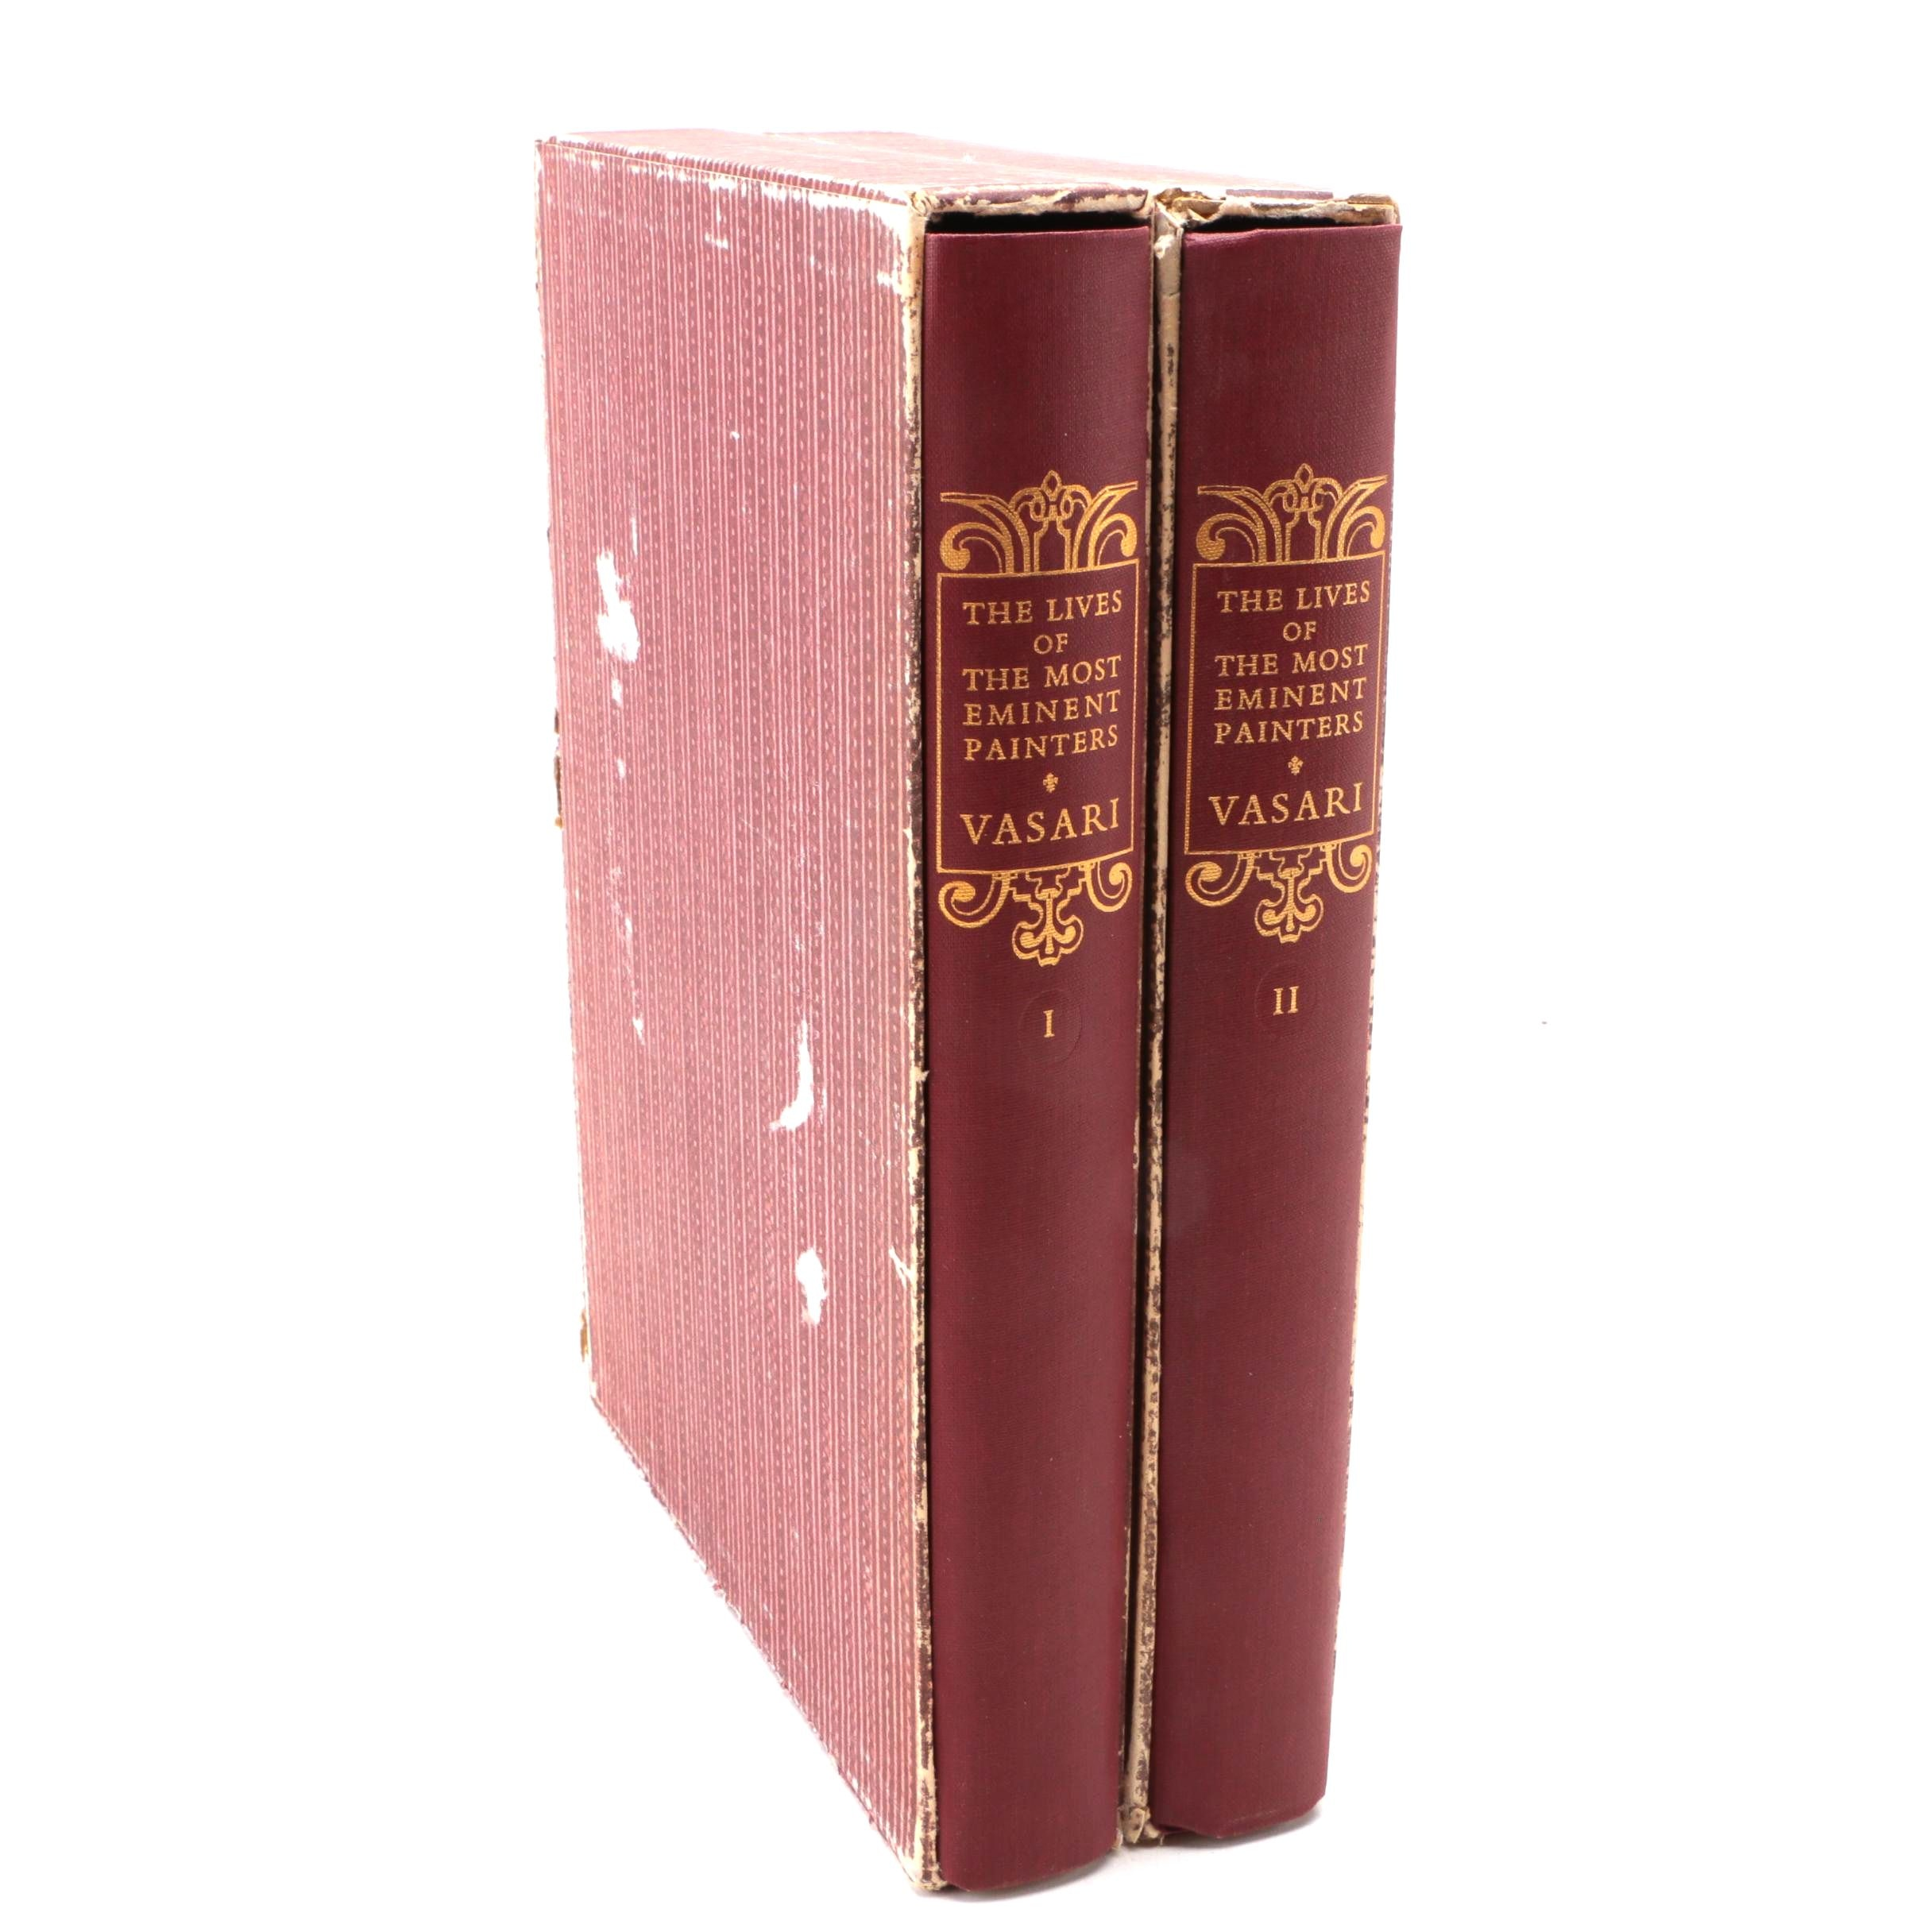 """Two-Volume Set of """"Lives of the Most Eminent Painters"""" by Giorgio Vasari"""